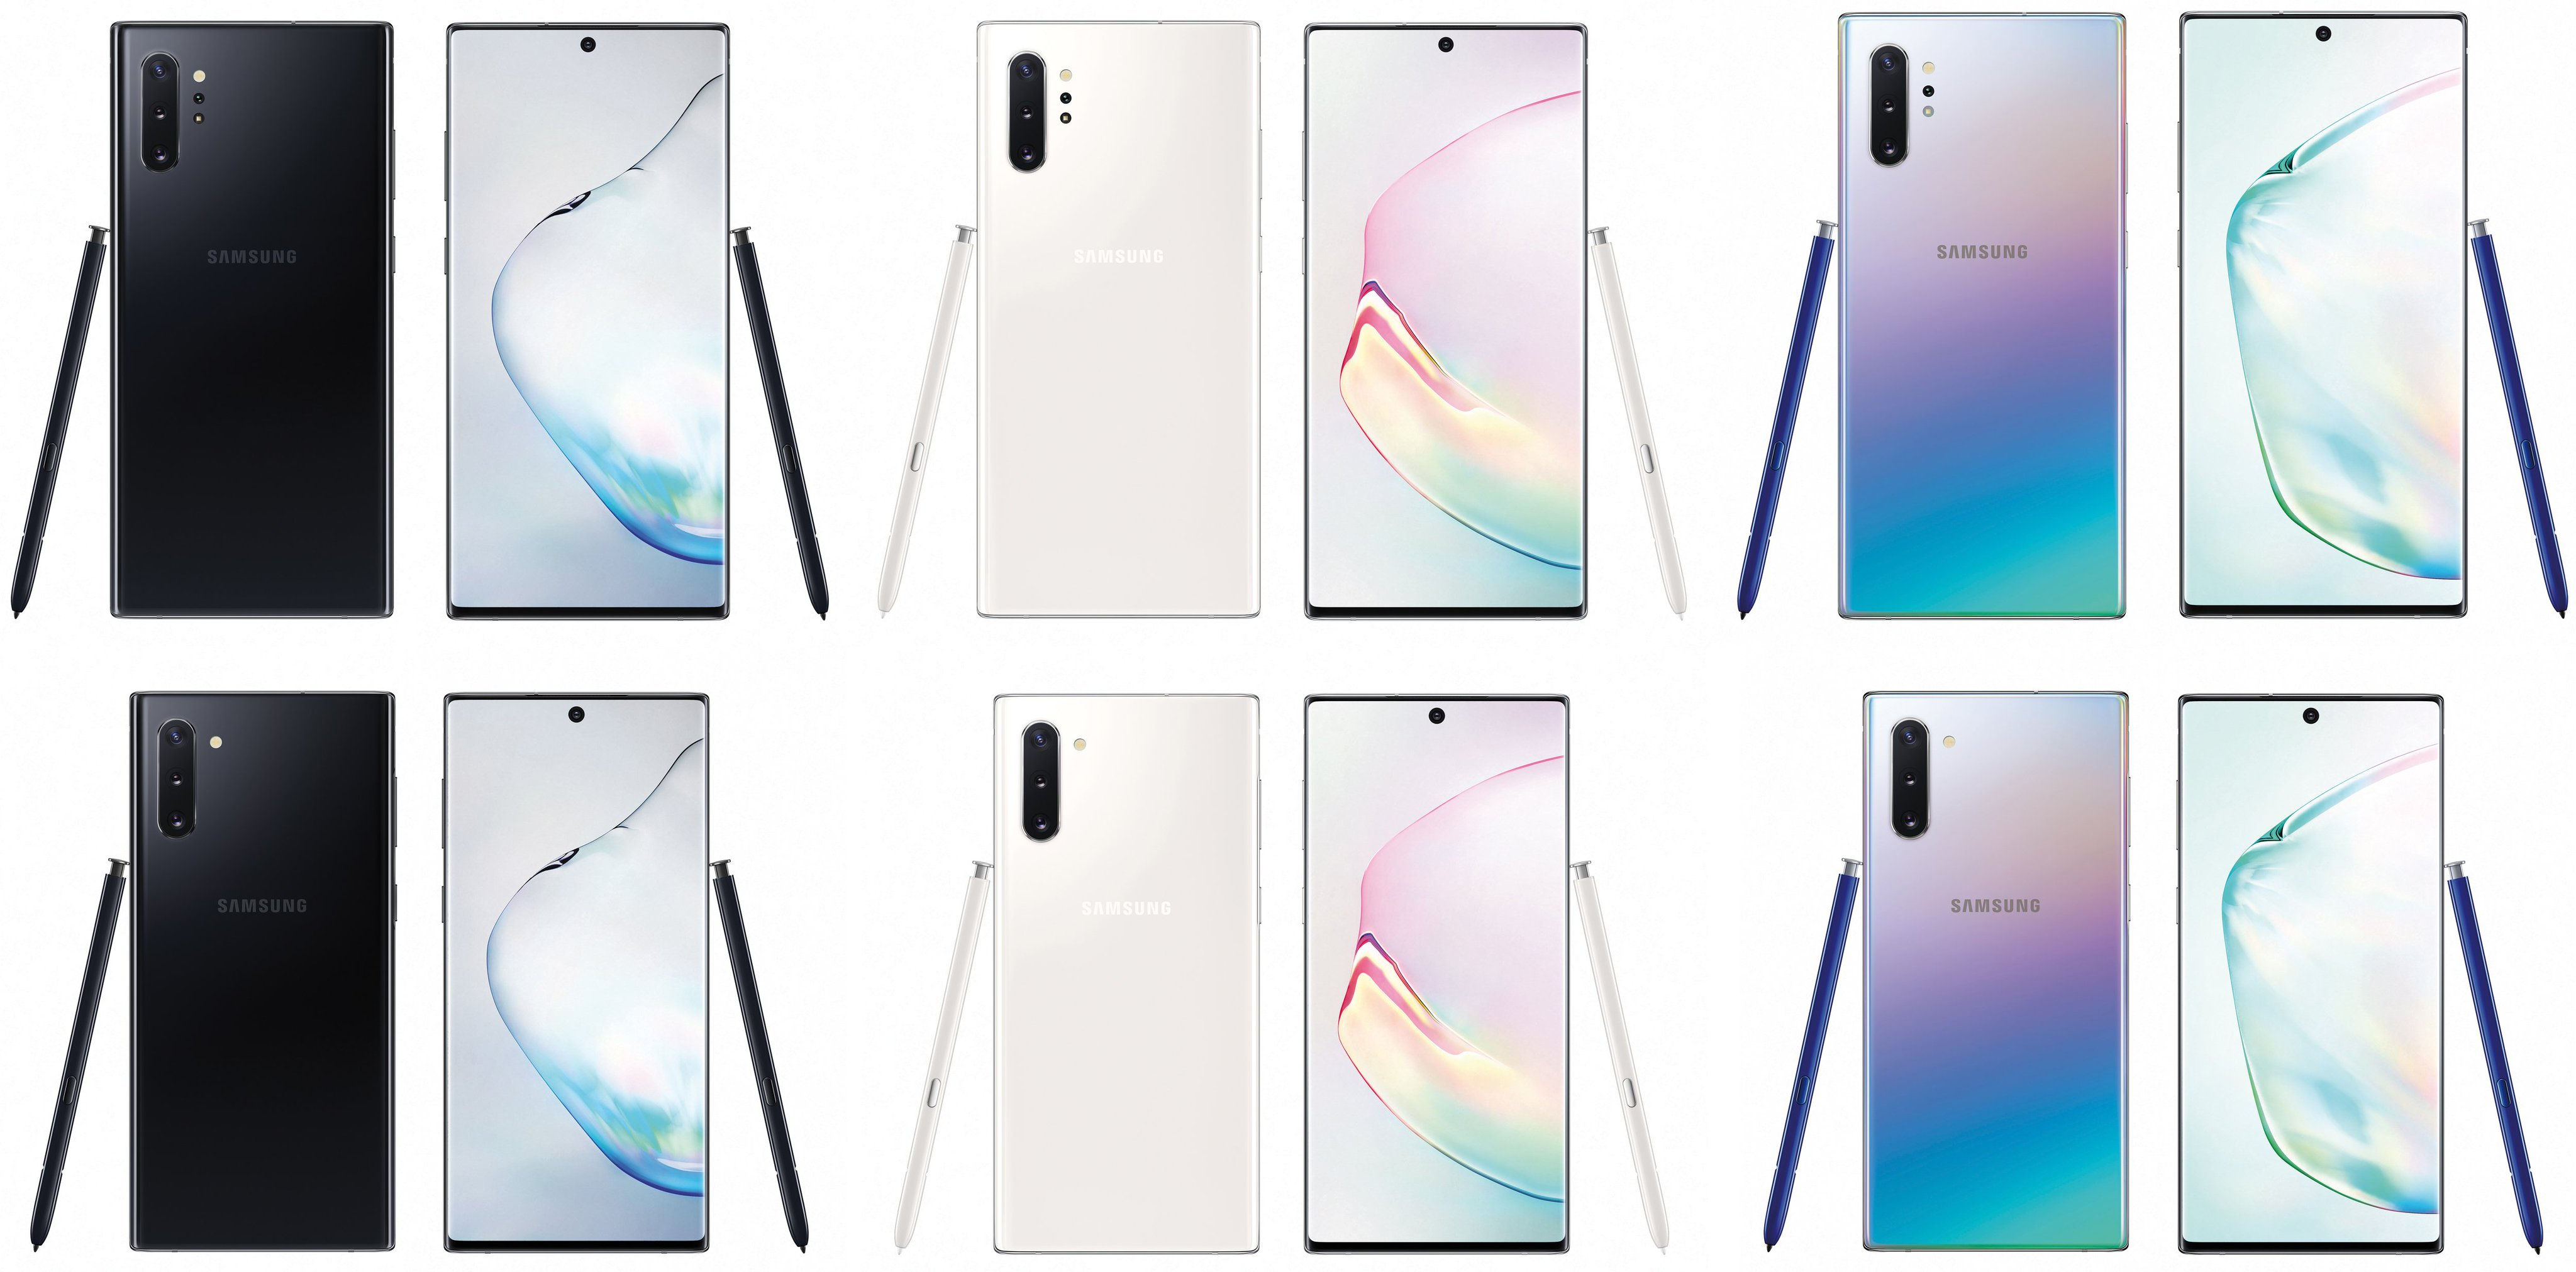 CBg3Mbhmp4JPET4Xxo5taa - Samsung Galaxy Note 10 colors leak shows less exciting options than Note 9